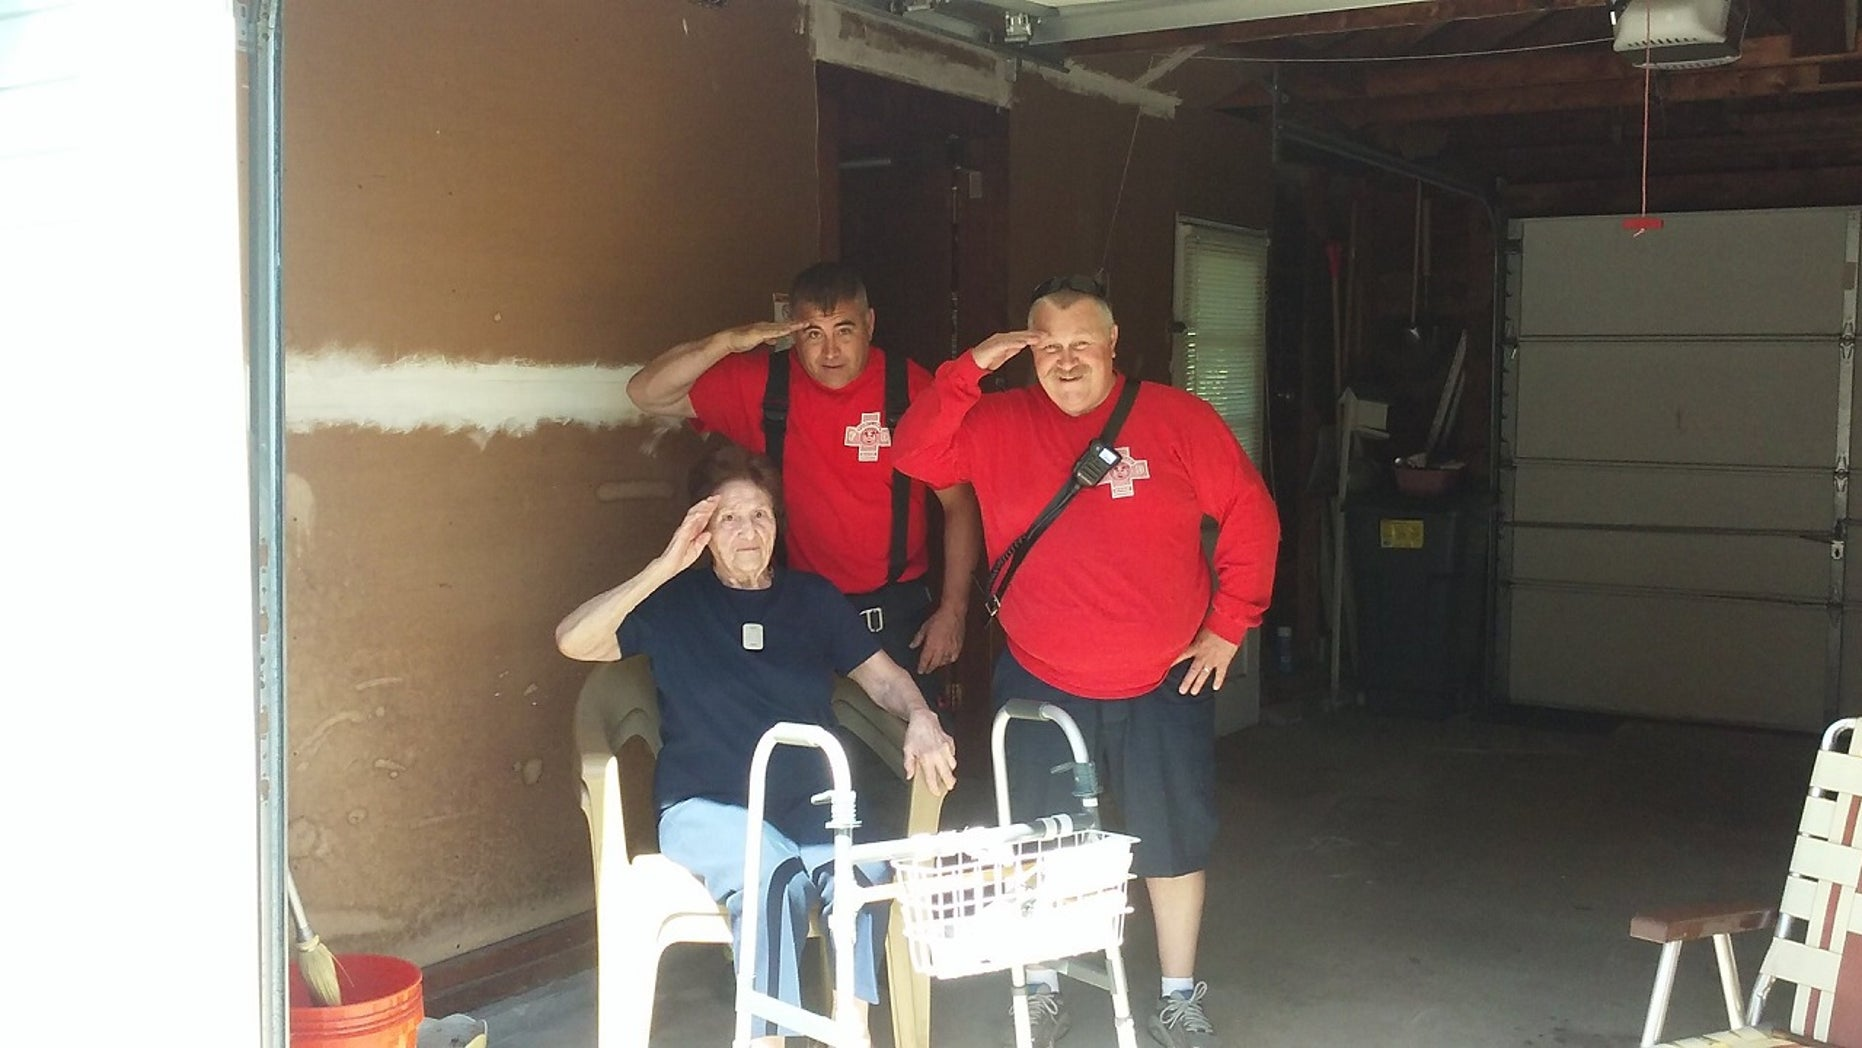 Firefighters in Maine took time on Tuesday to assist a 97-year-old woman with a patriotic task.